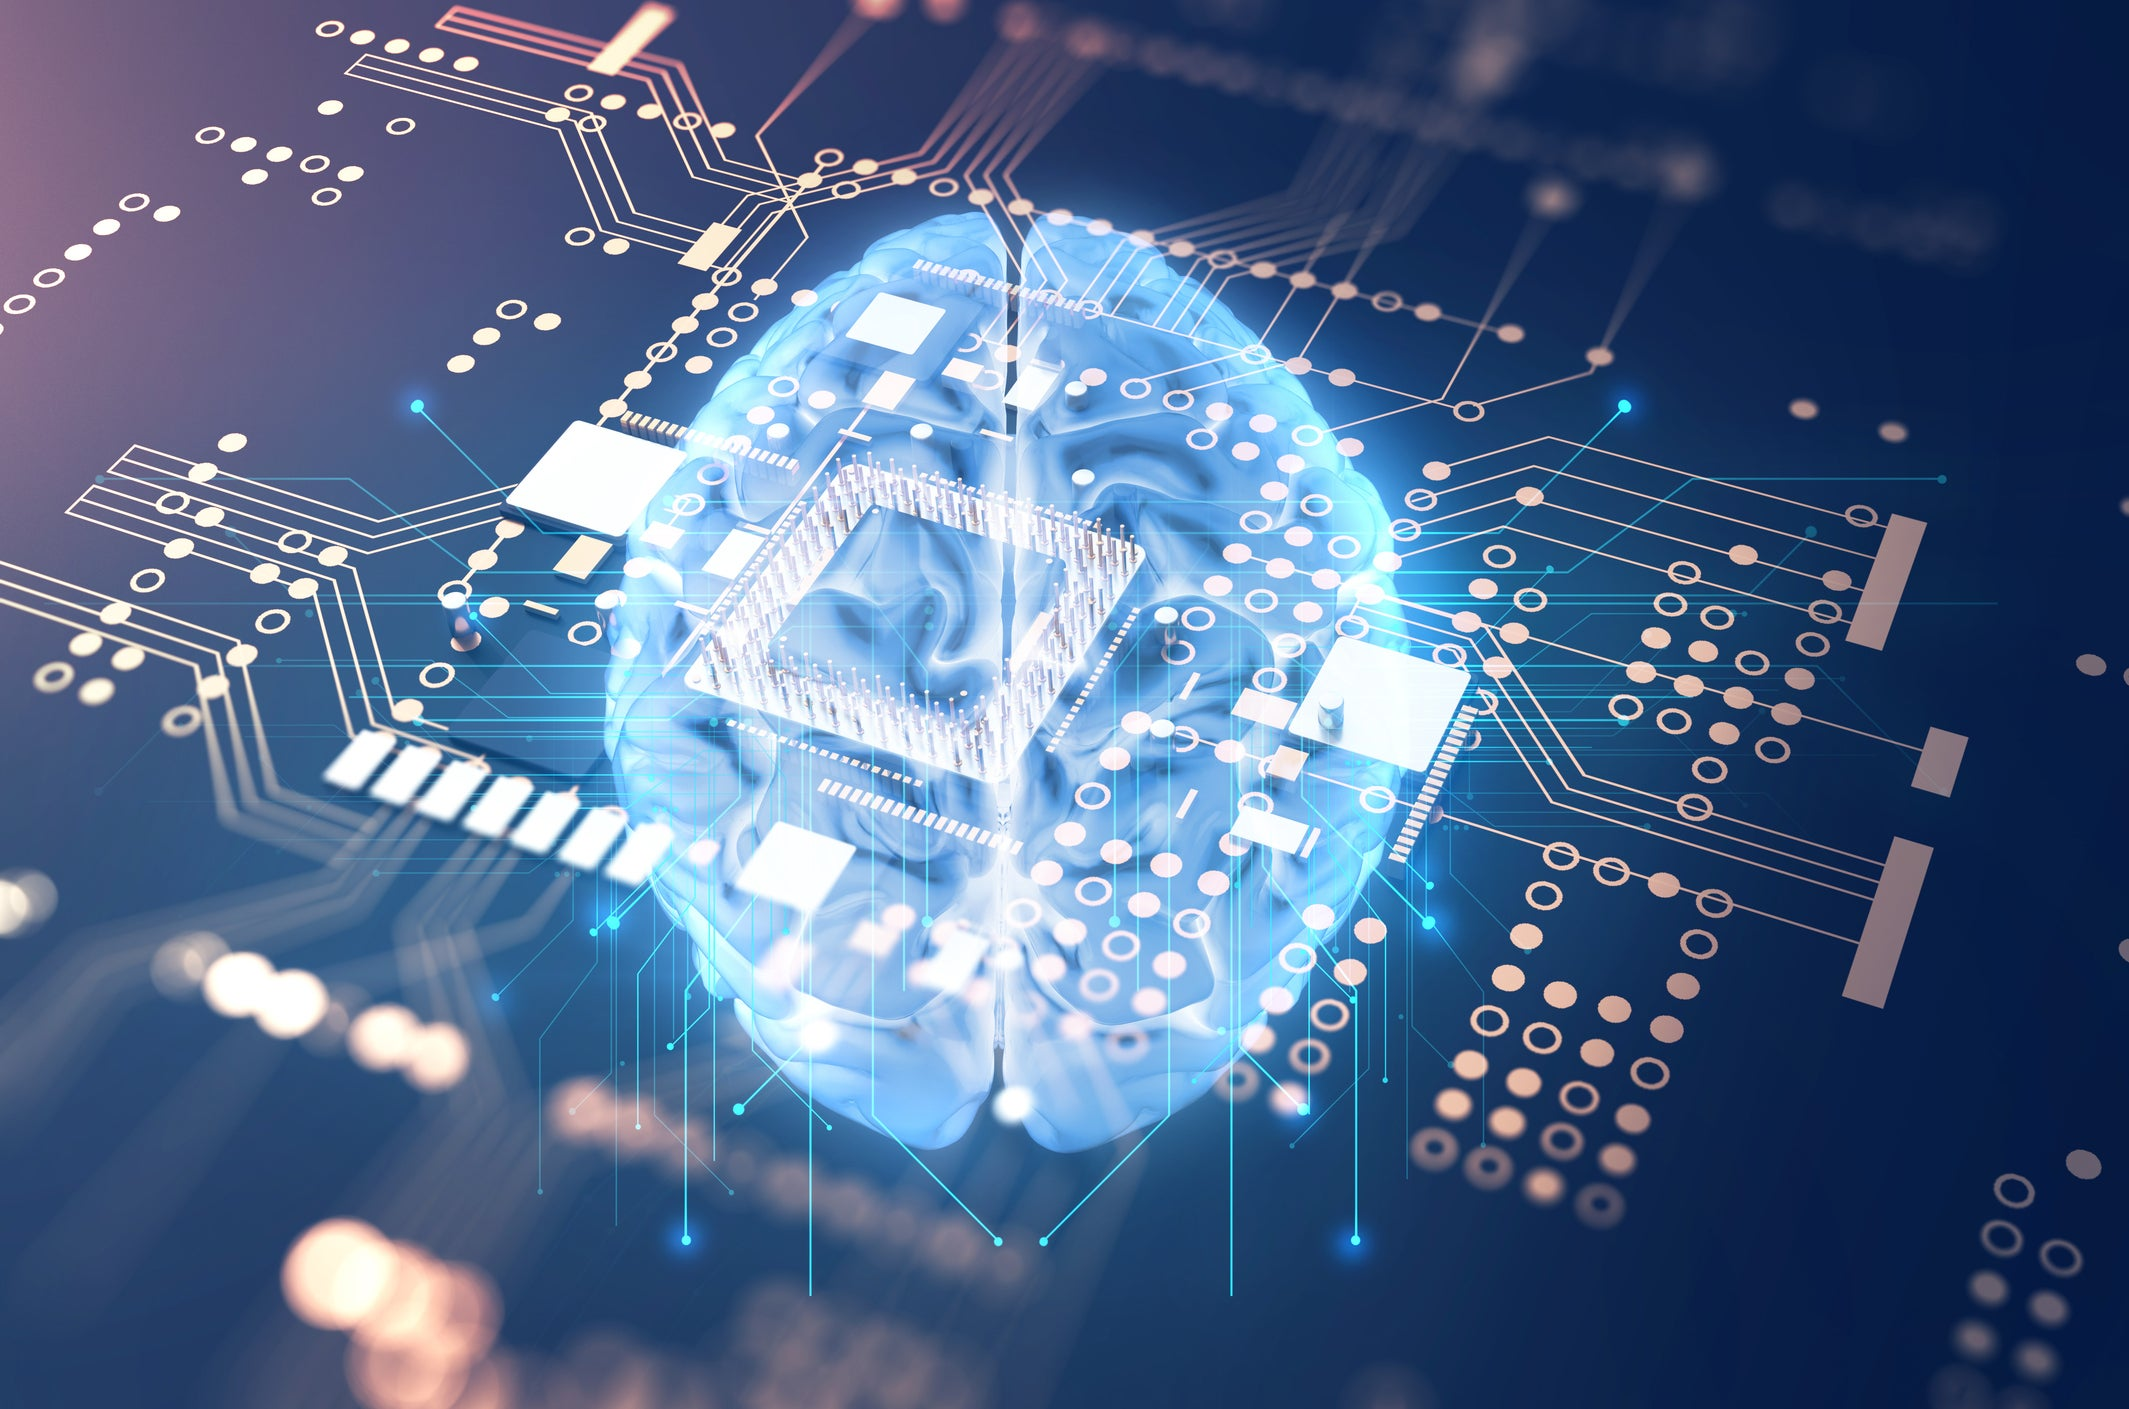 For decades, computer scientists interested in human-computer interaction have viewed the brain as a machine.